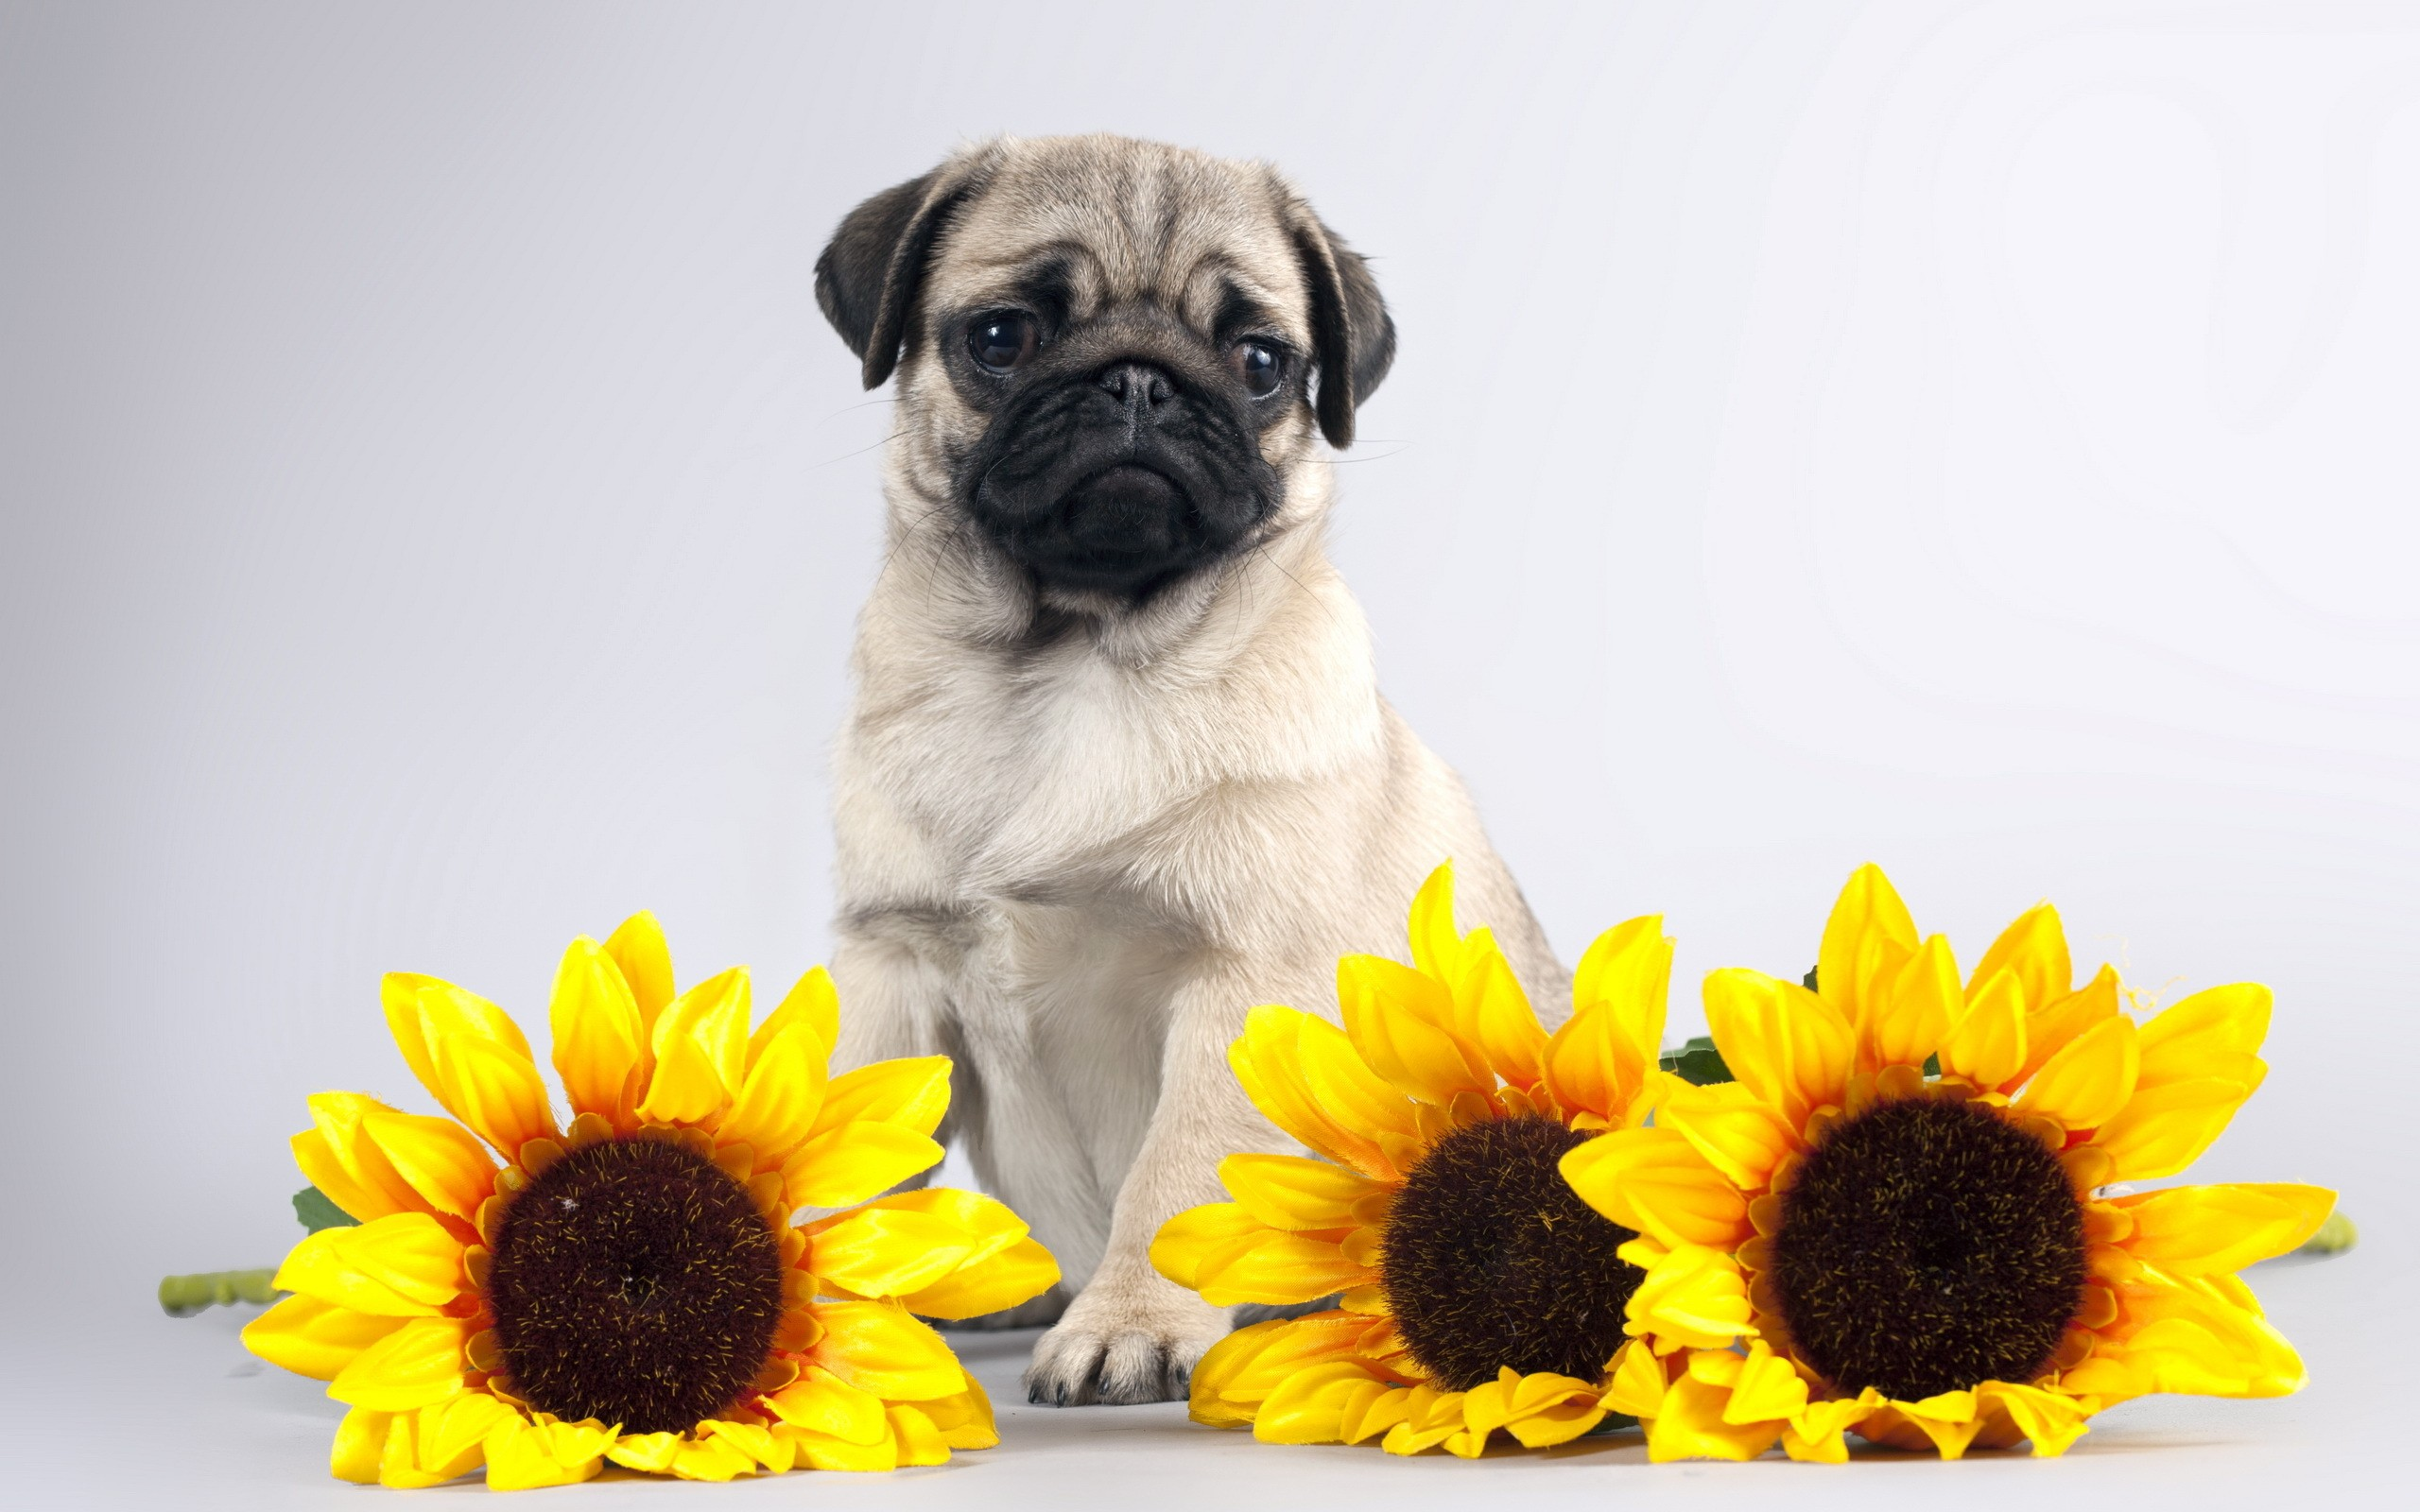 Pug and sunflowers wallpaper